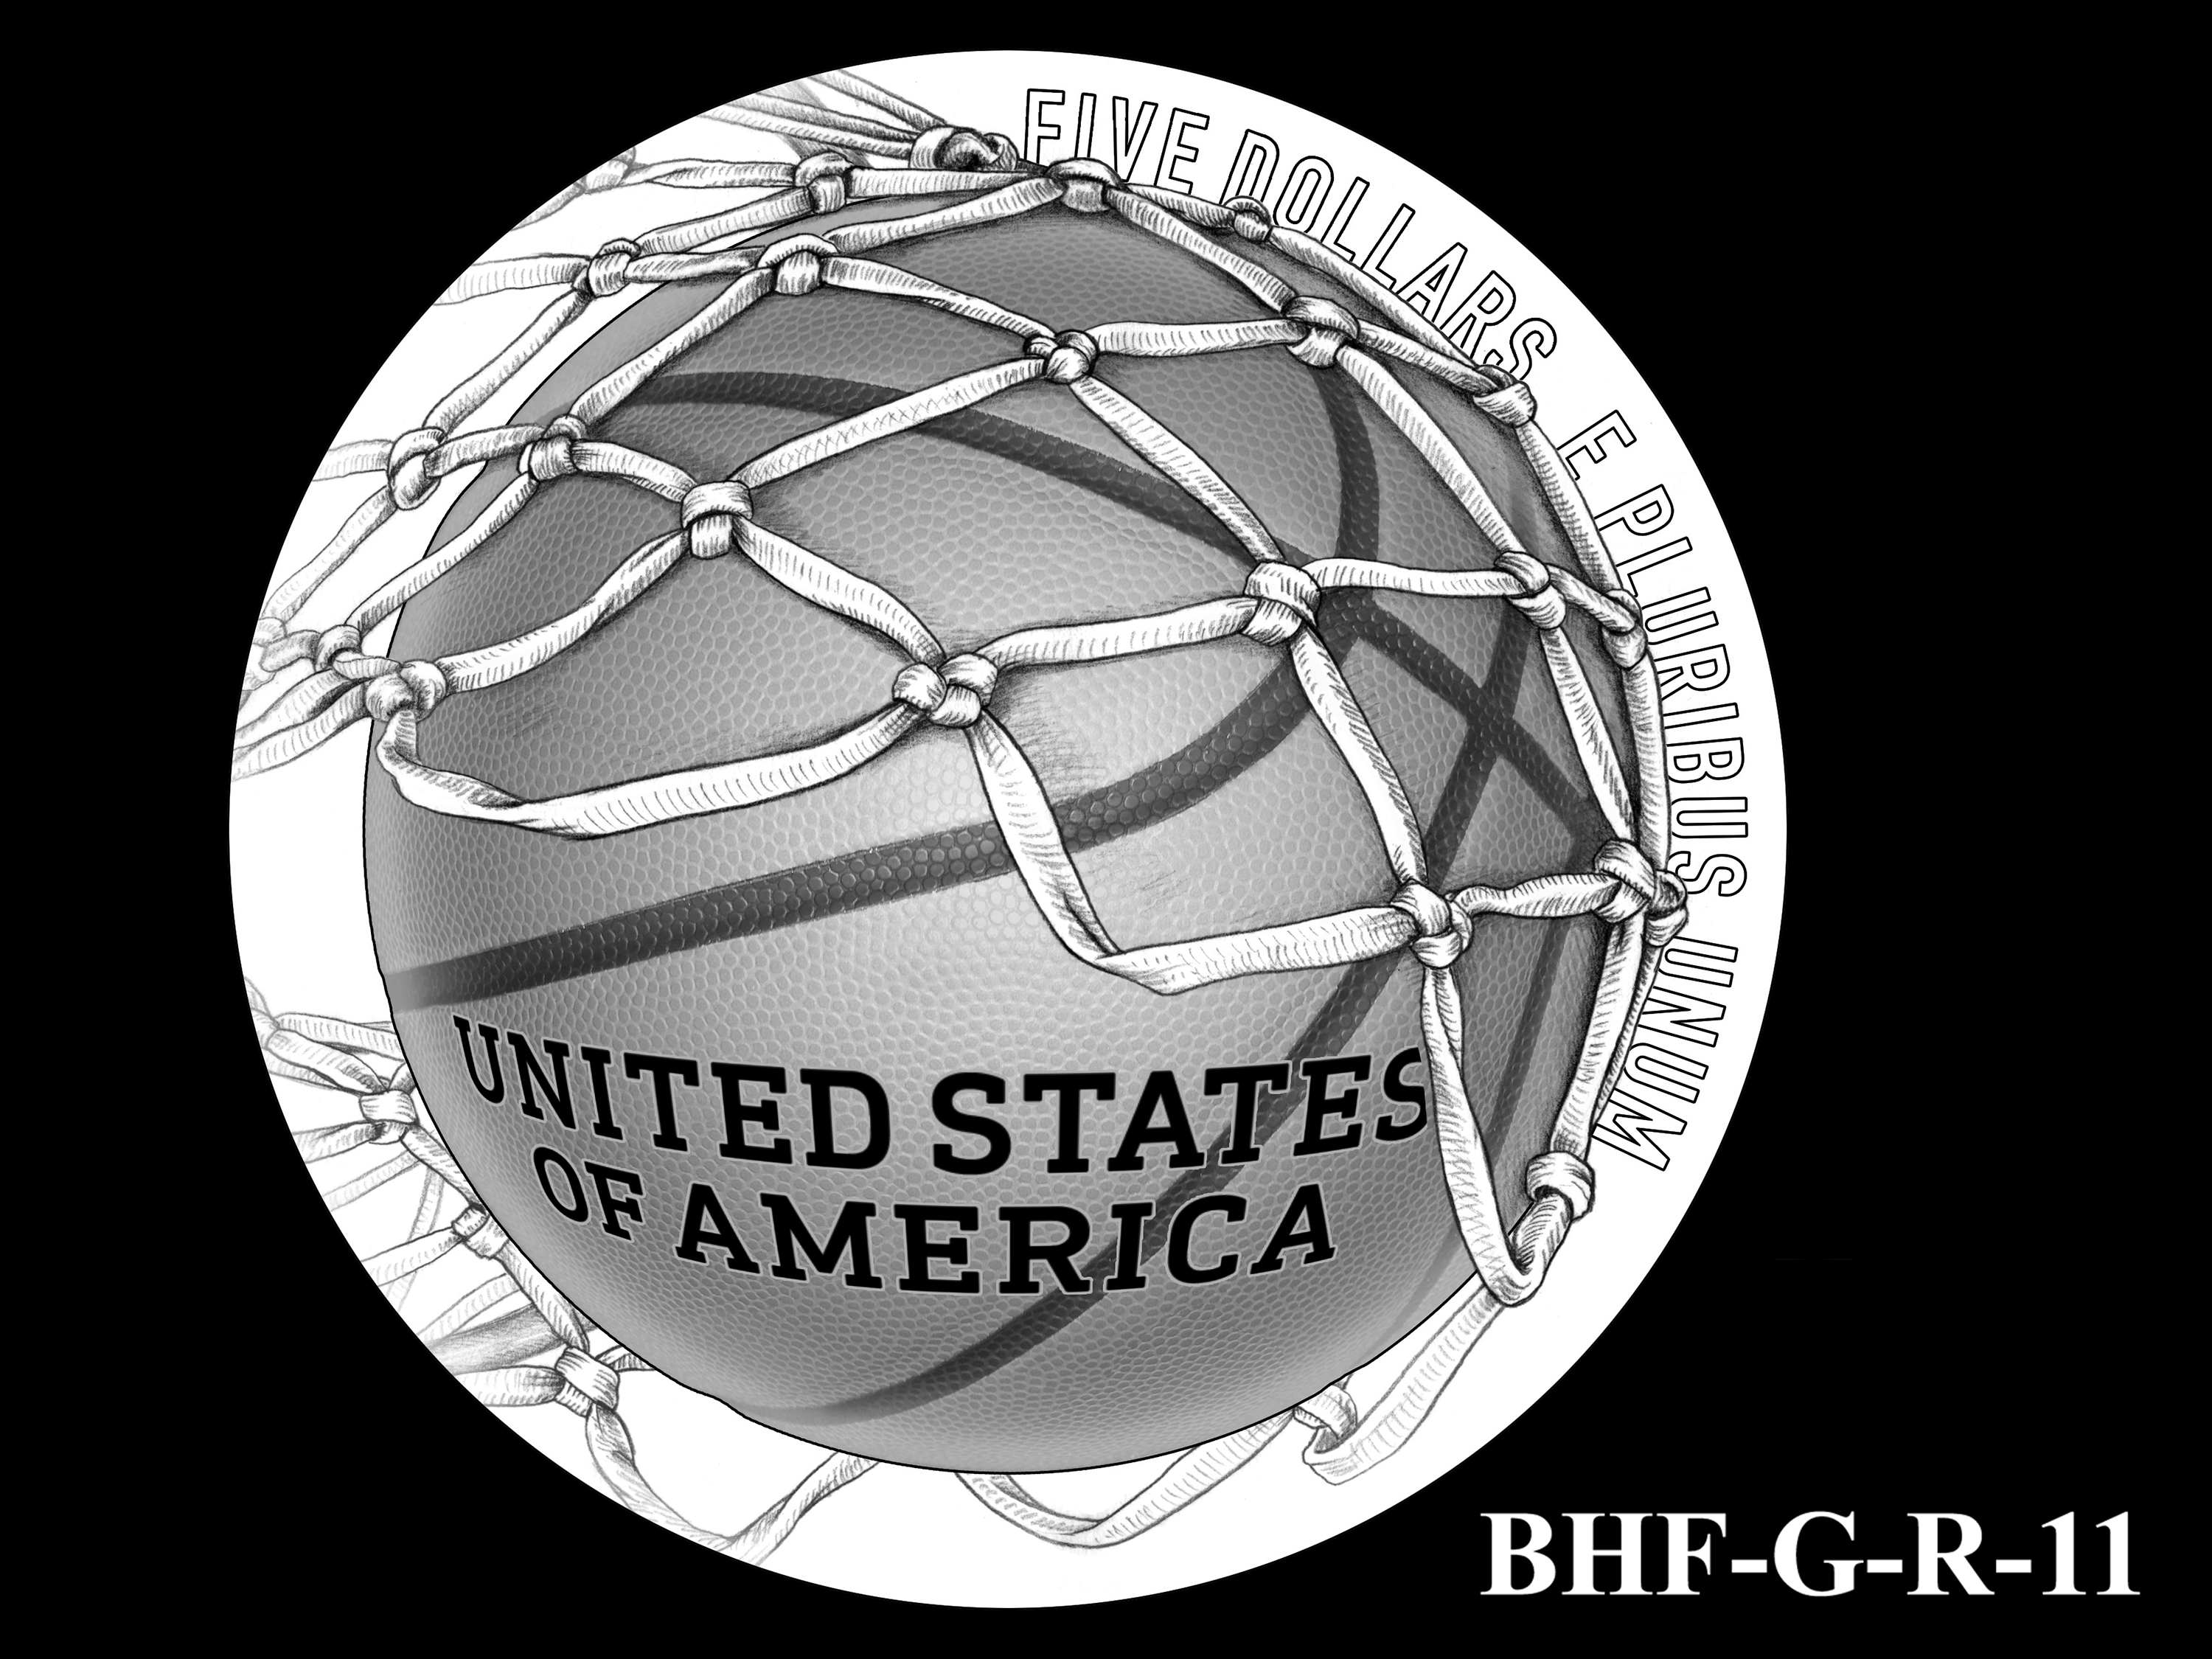 BHF-G-R-11 -- 2020 Basketball Hall of Fame Commemorative Coin Program - Gold Reverse